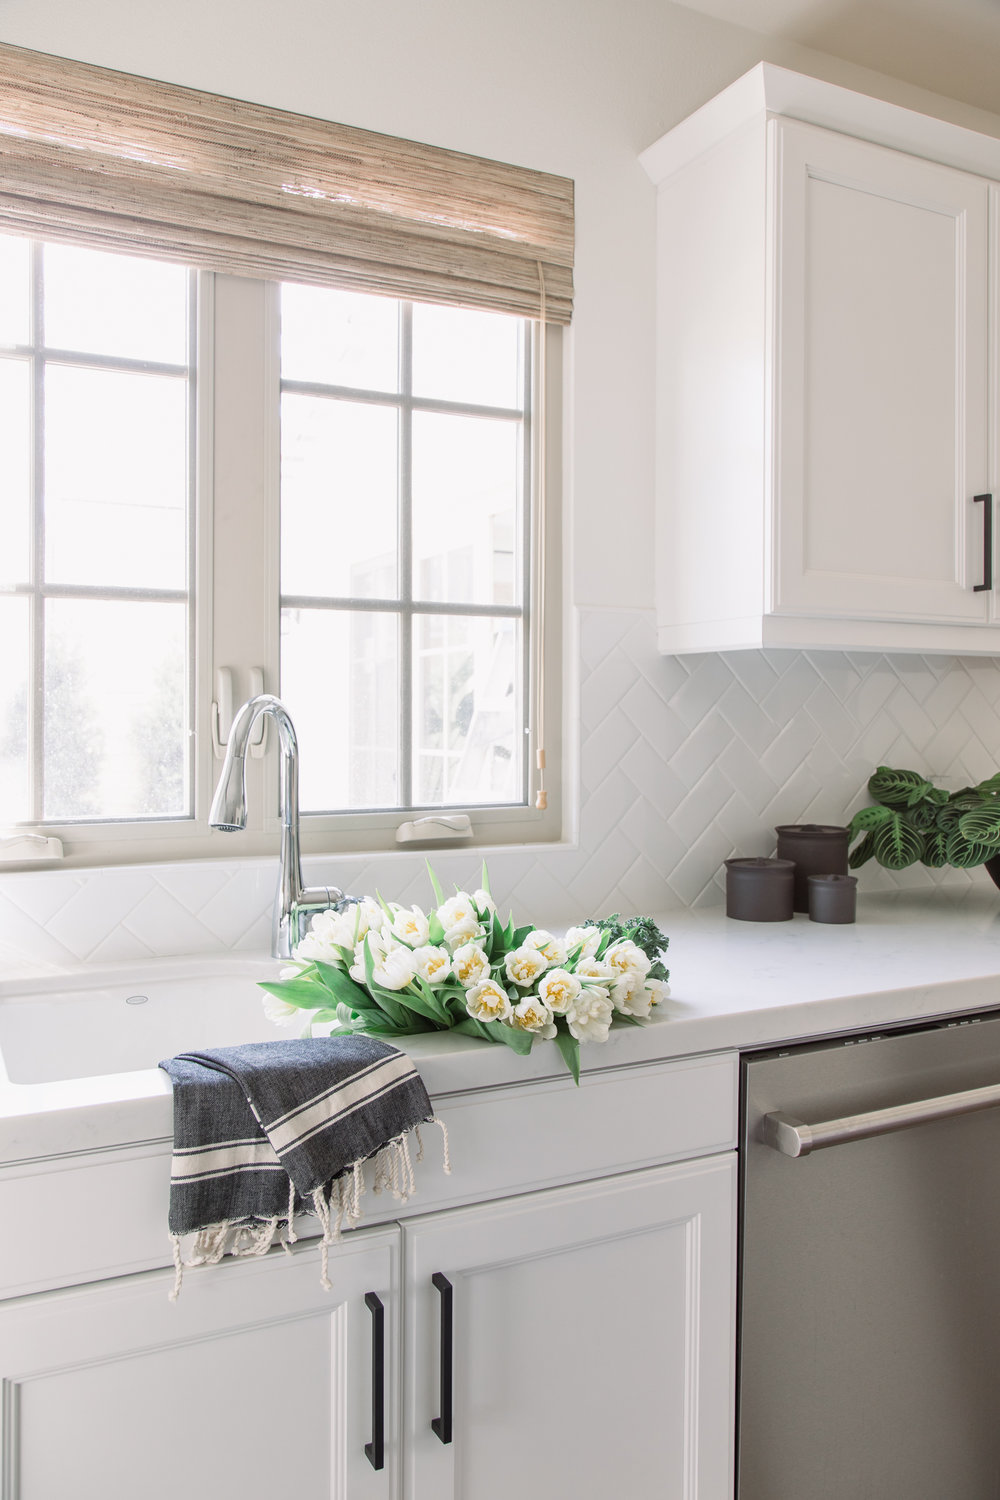 The herringbone subway tile backsplash is almost invisible, but just enough to give it texture that pops out.